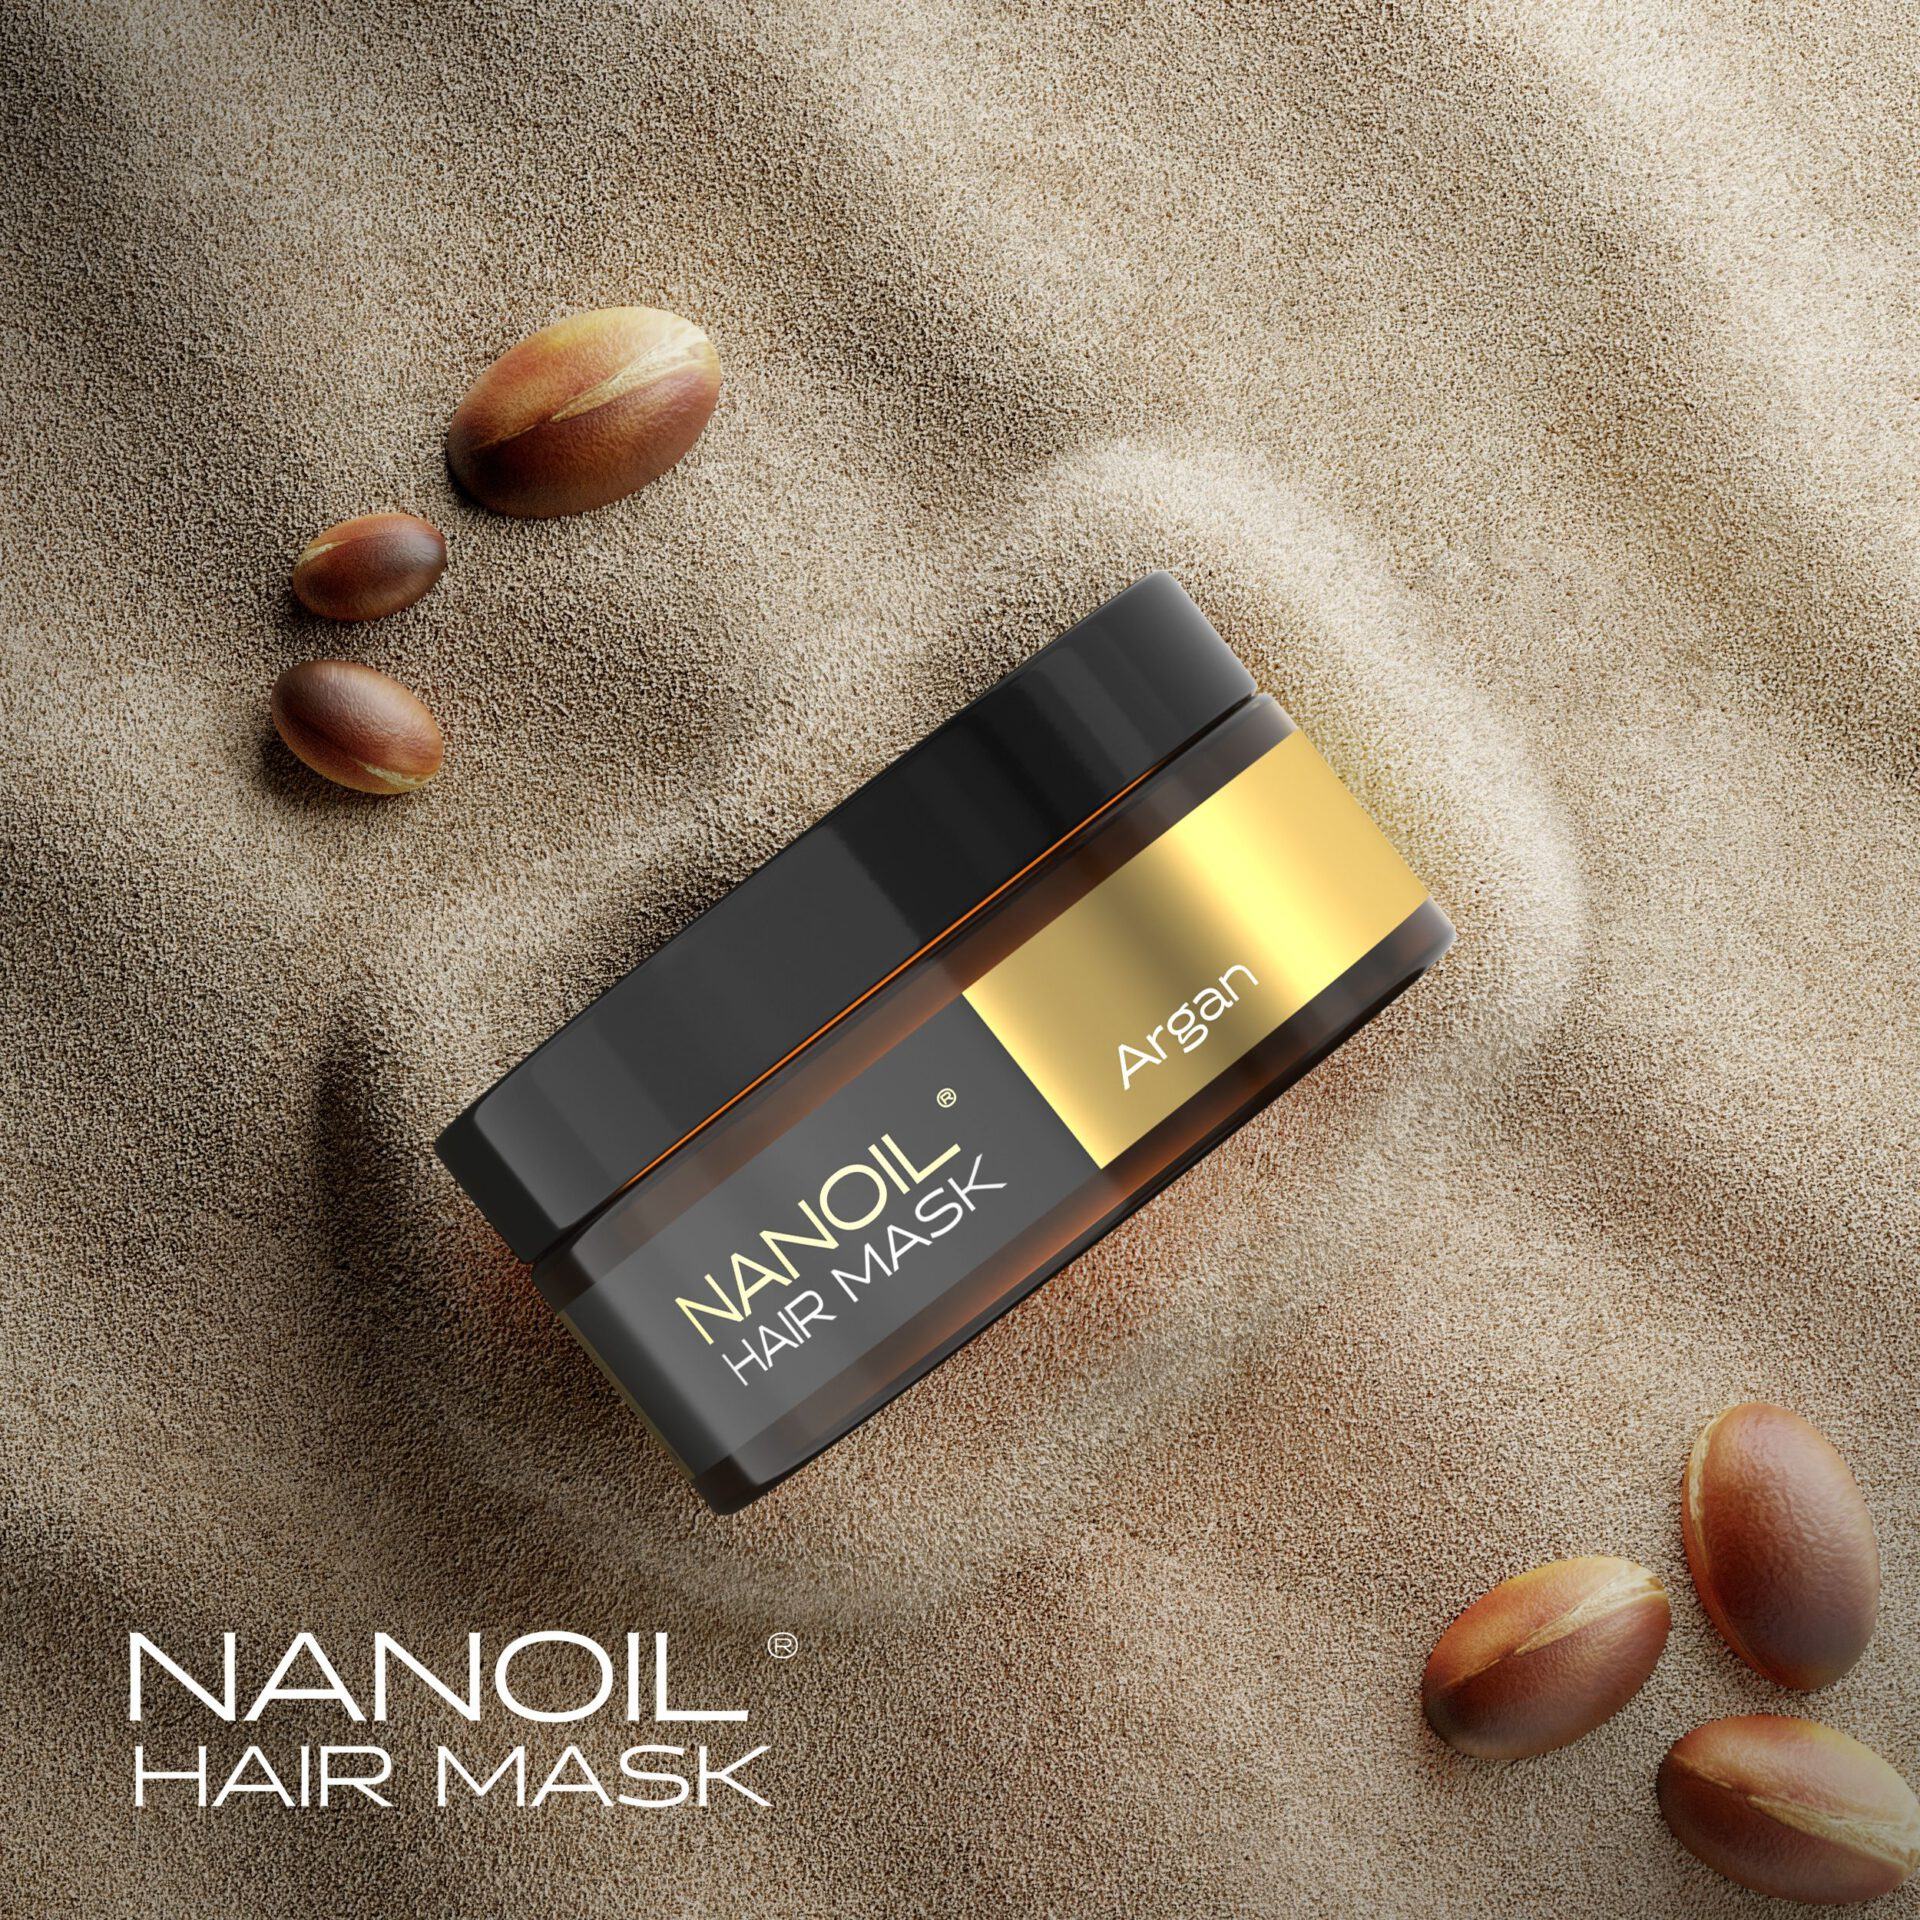 The power of argan oil in the Nanoil Argan Hair Mask. Does it really work?